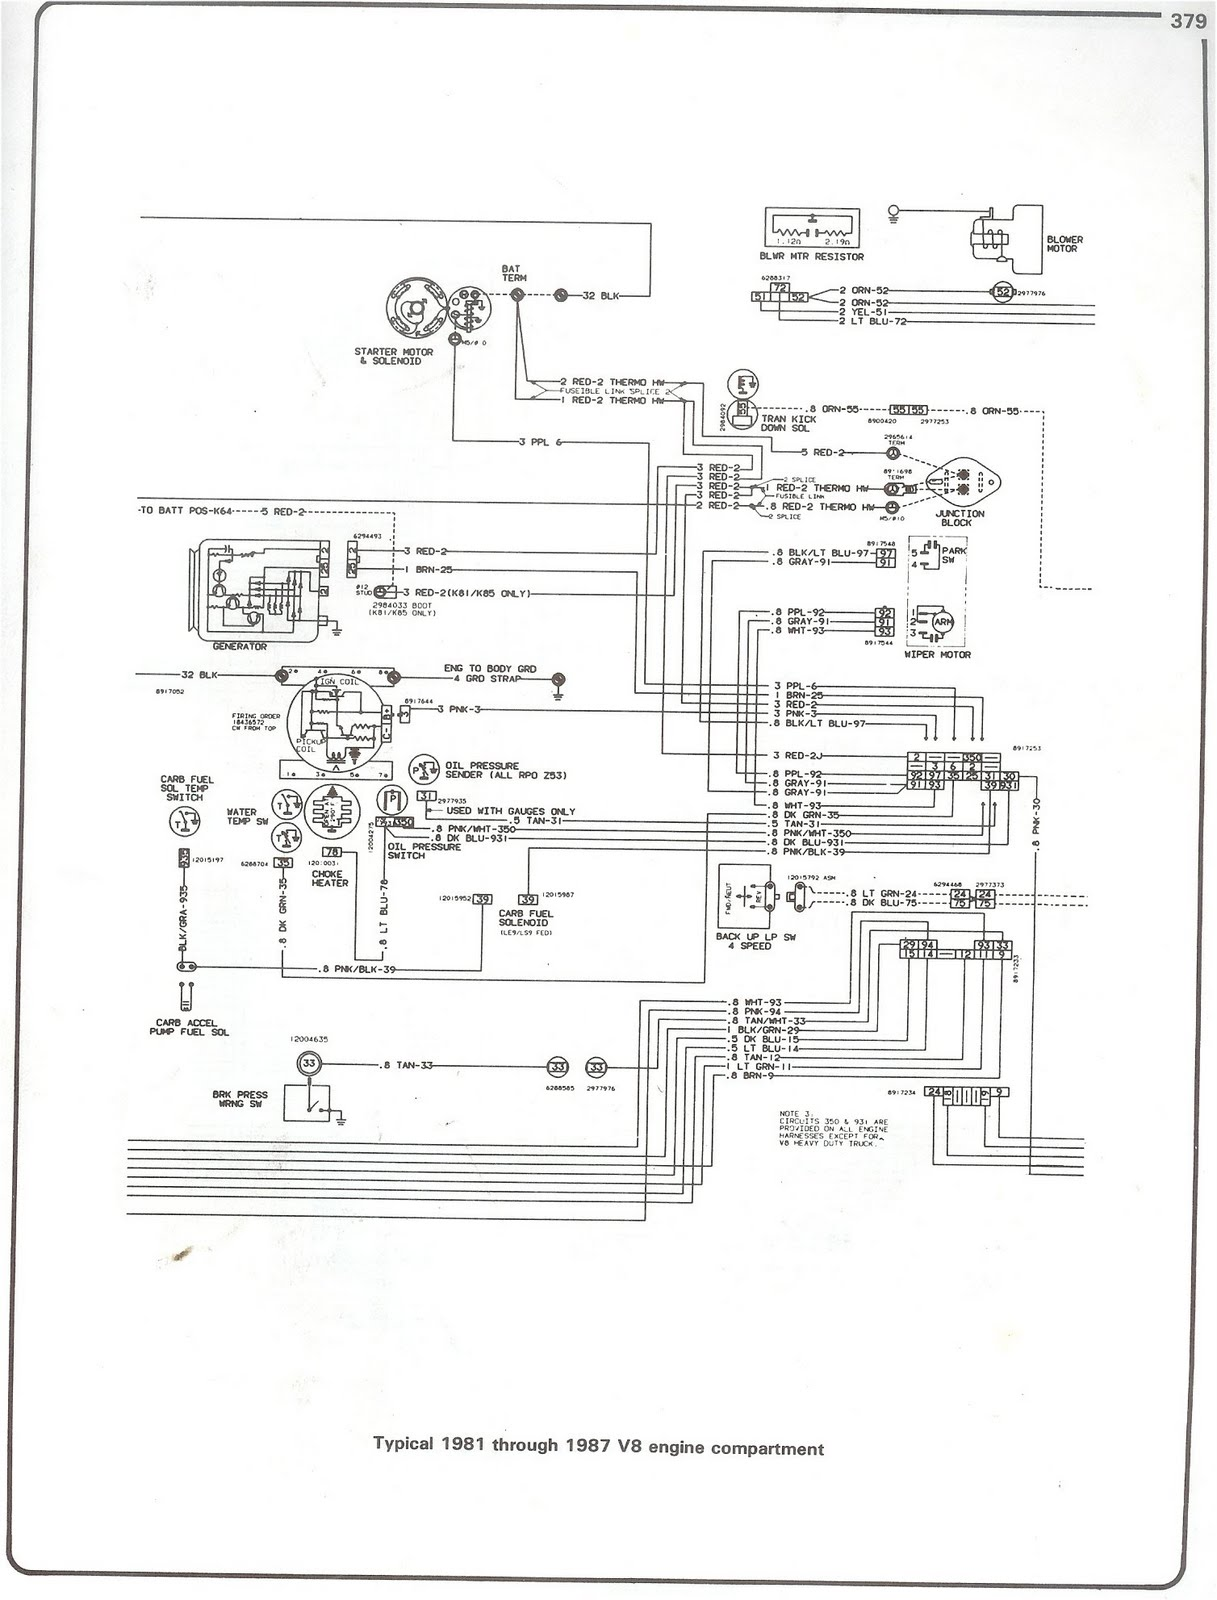 1988 Blazer Wiring Schematic Diagrams Archive Of Automotive Chevy Caprice Diagram 85 Fuse Panel Auto Electrical Rh Semanticscholar Org Uk Edu Hardtobelieve